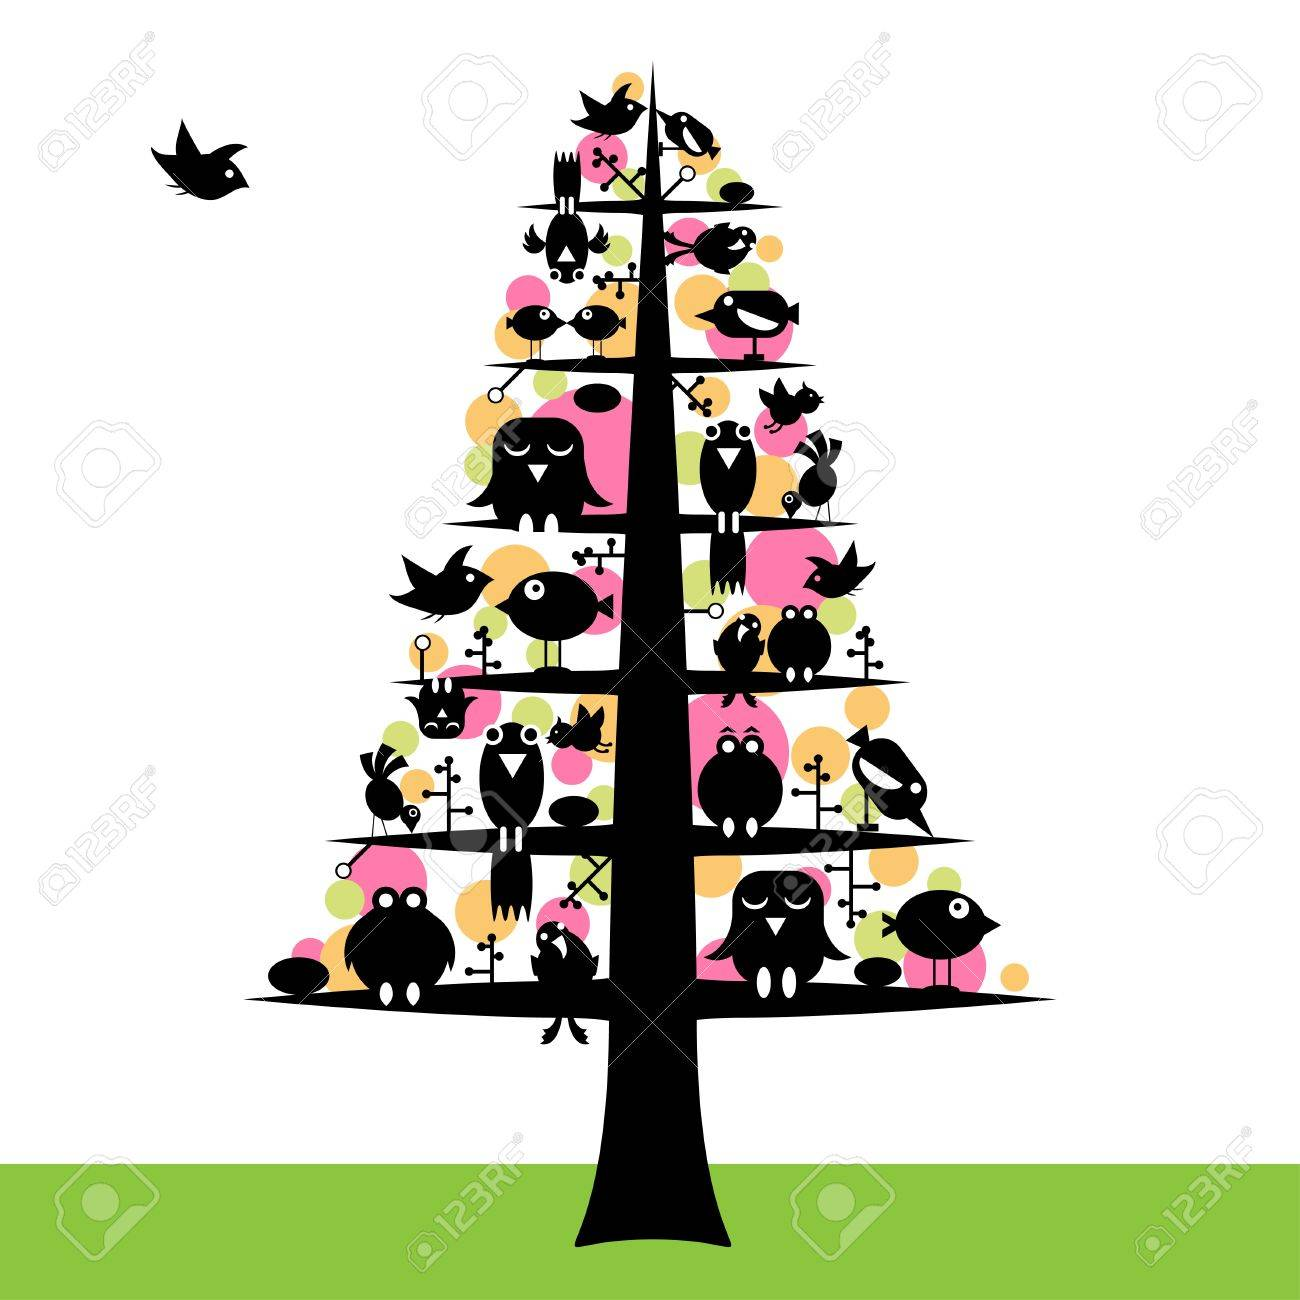 birds tree Stock Vector - 13111263